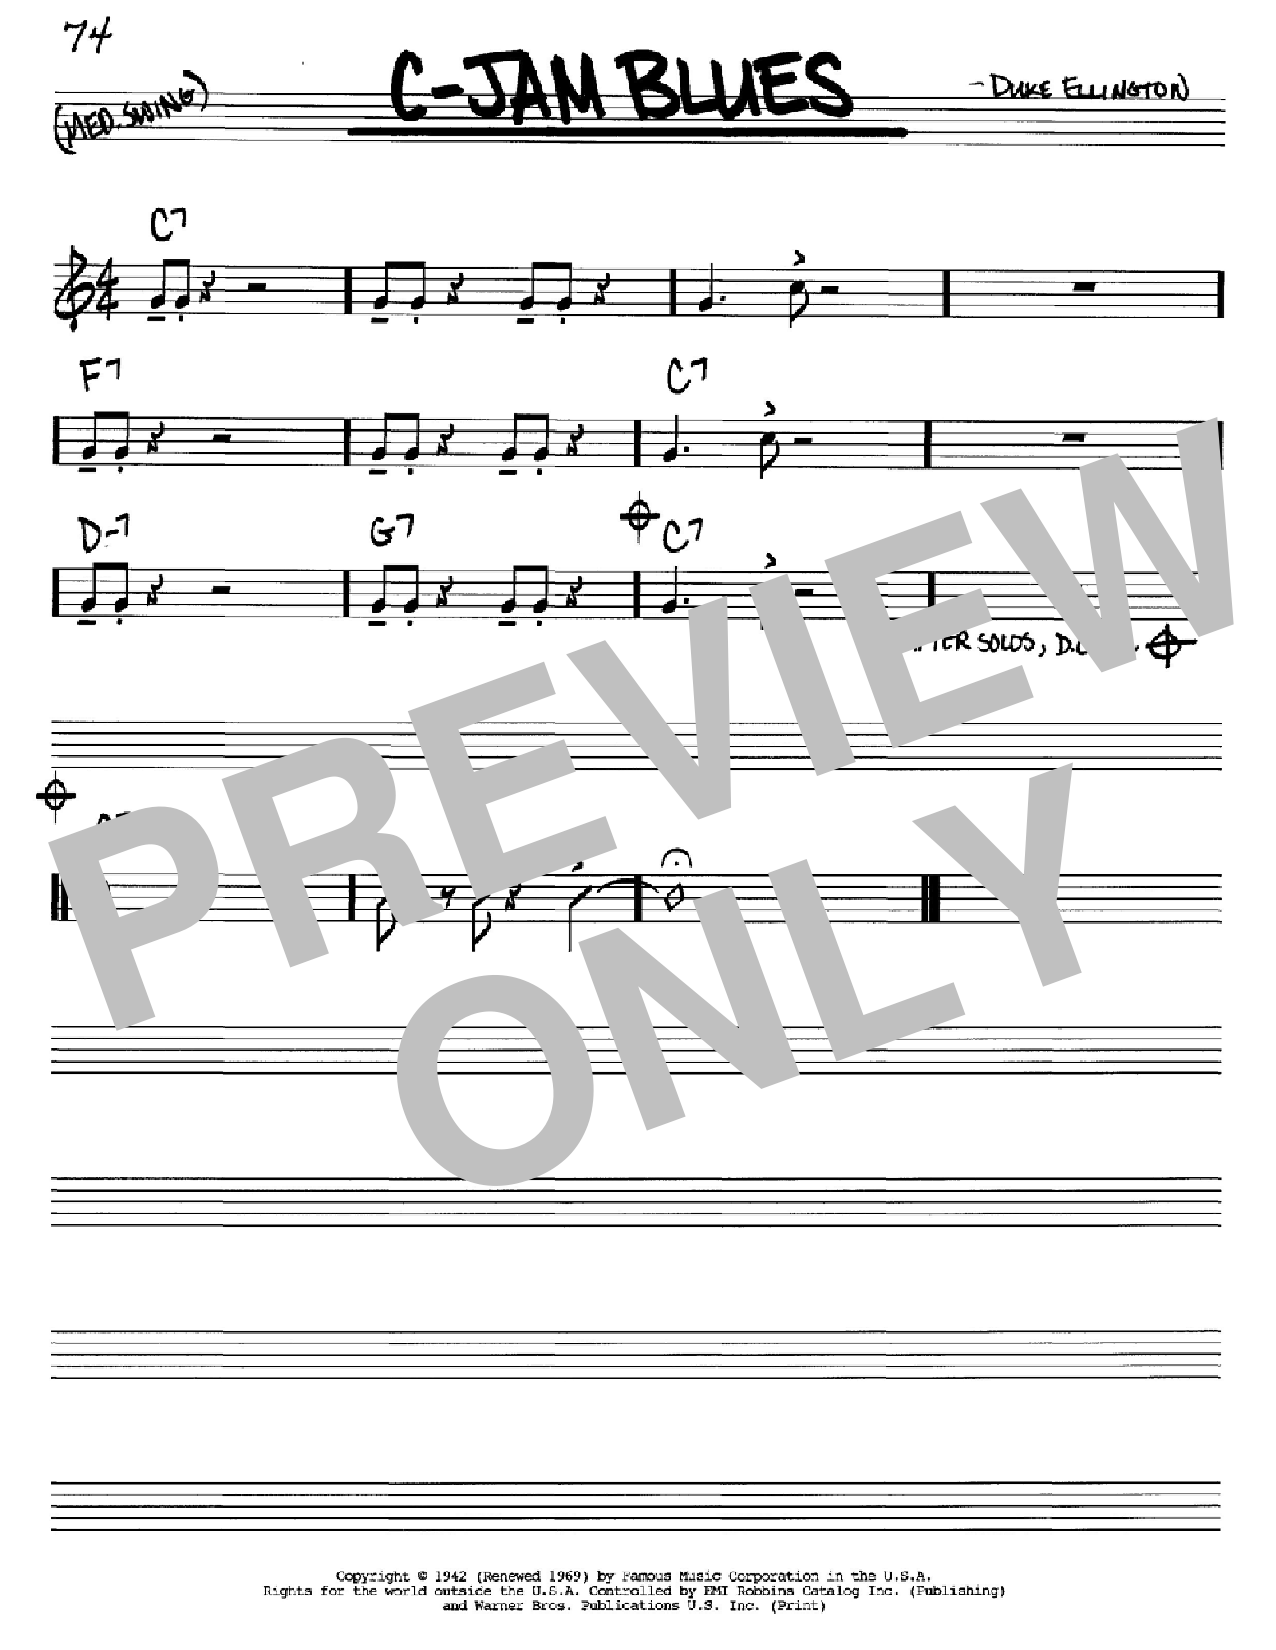 C-Jam Blues sheet music for voice and other instruments (C) by Duke Ellington